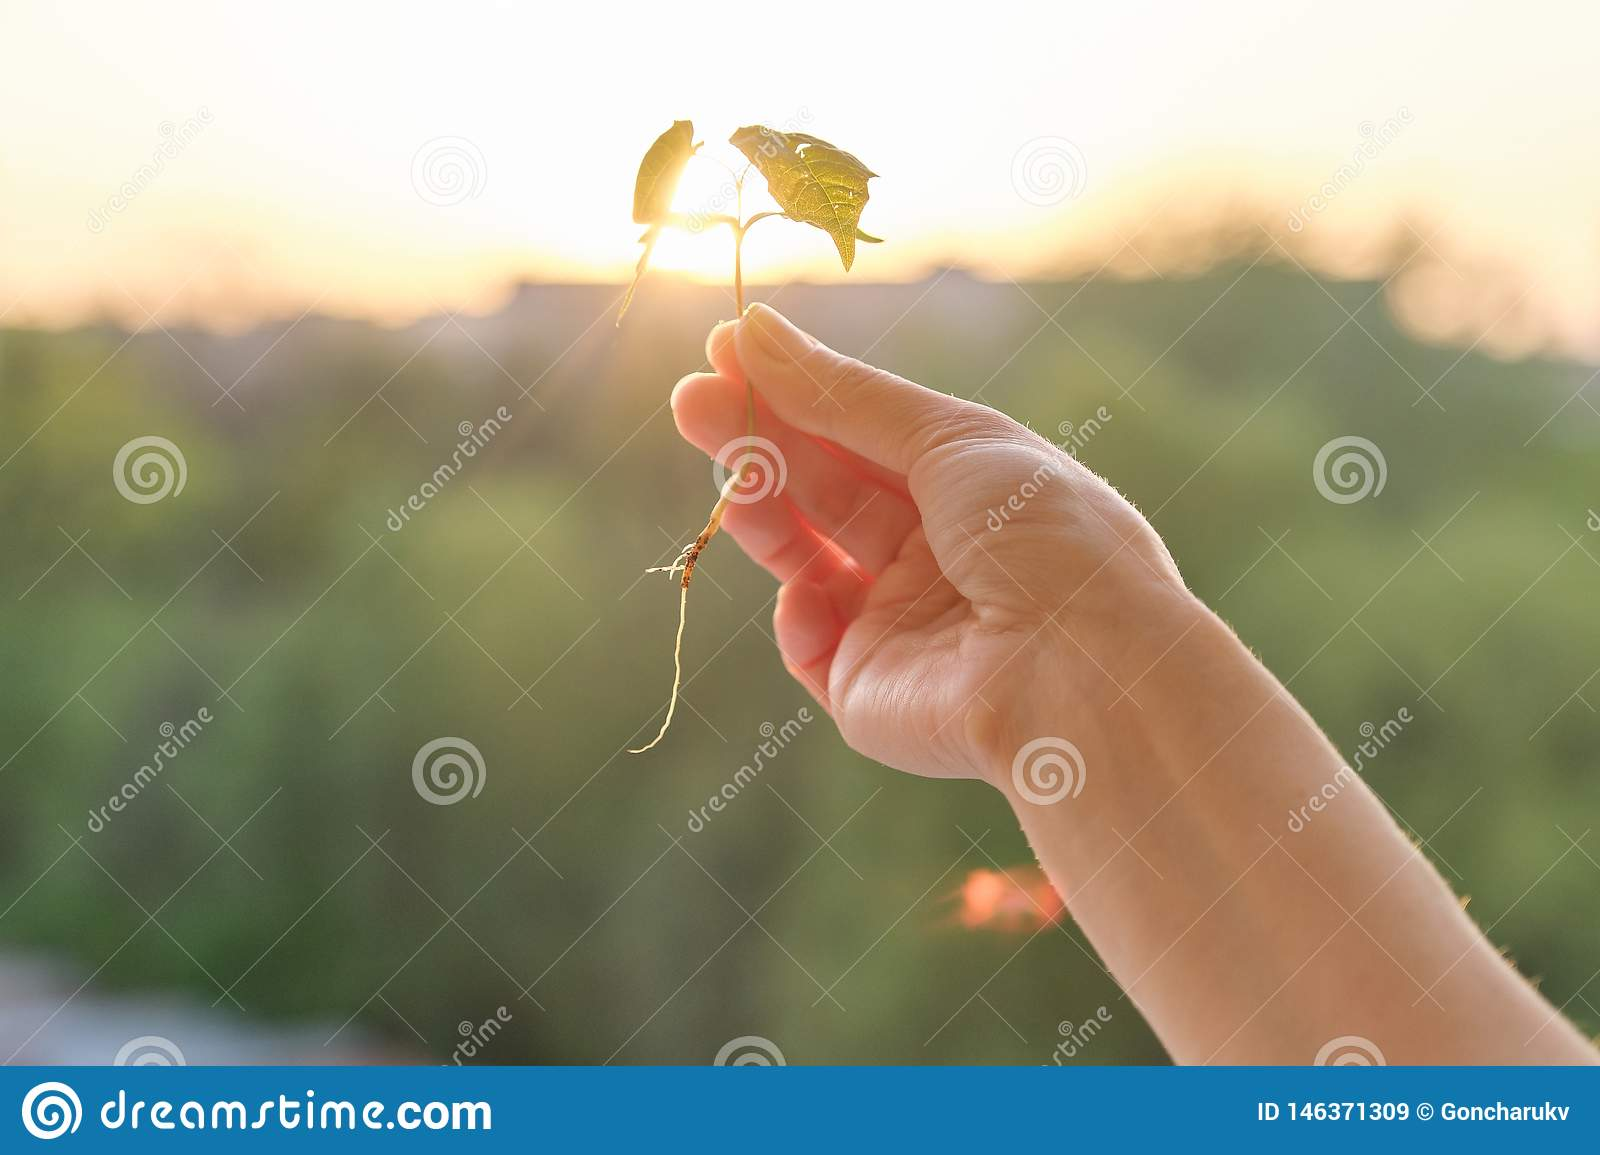 Hand holding sprout of small maple tree, conceptual photo background sunset golden hour